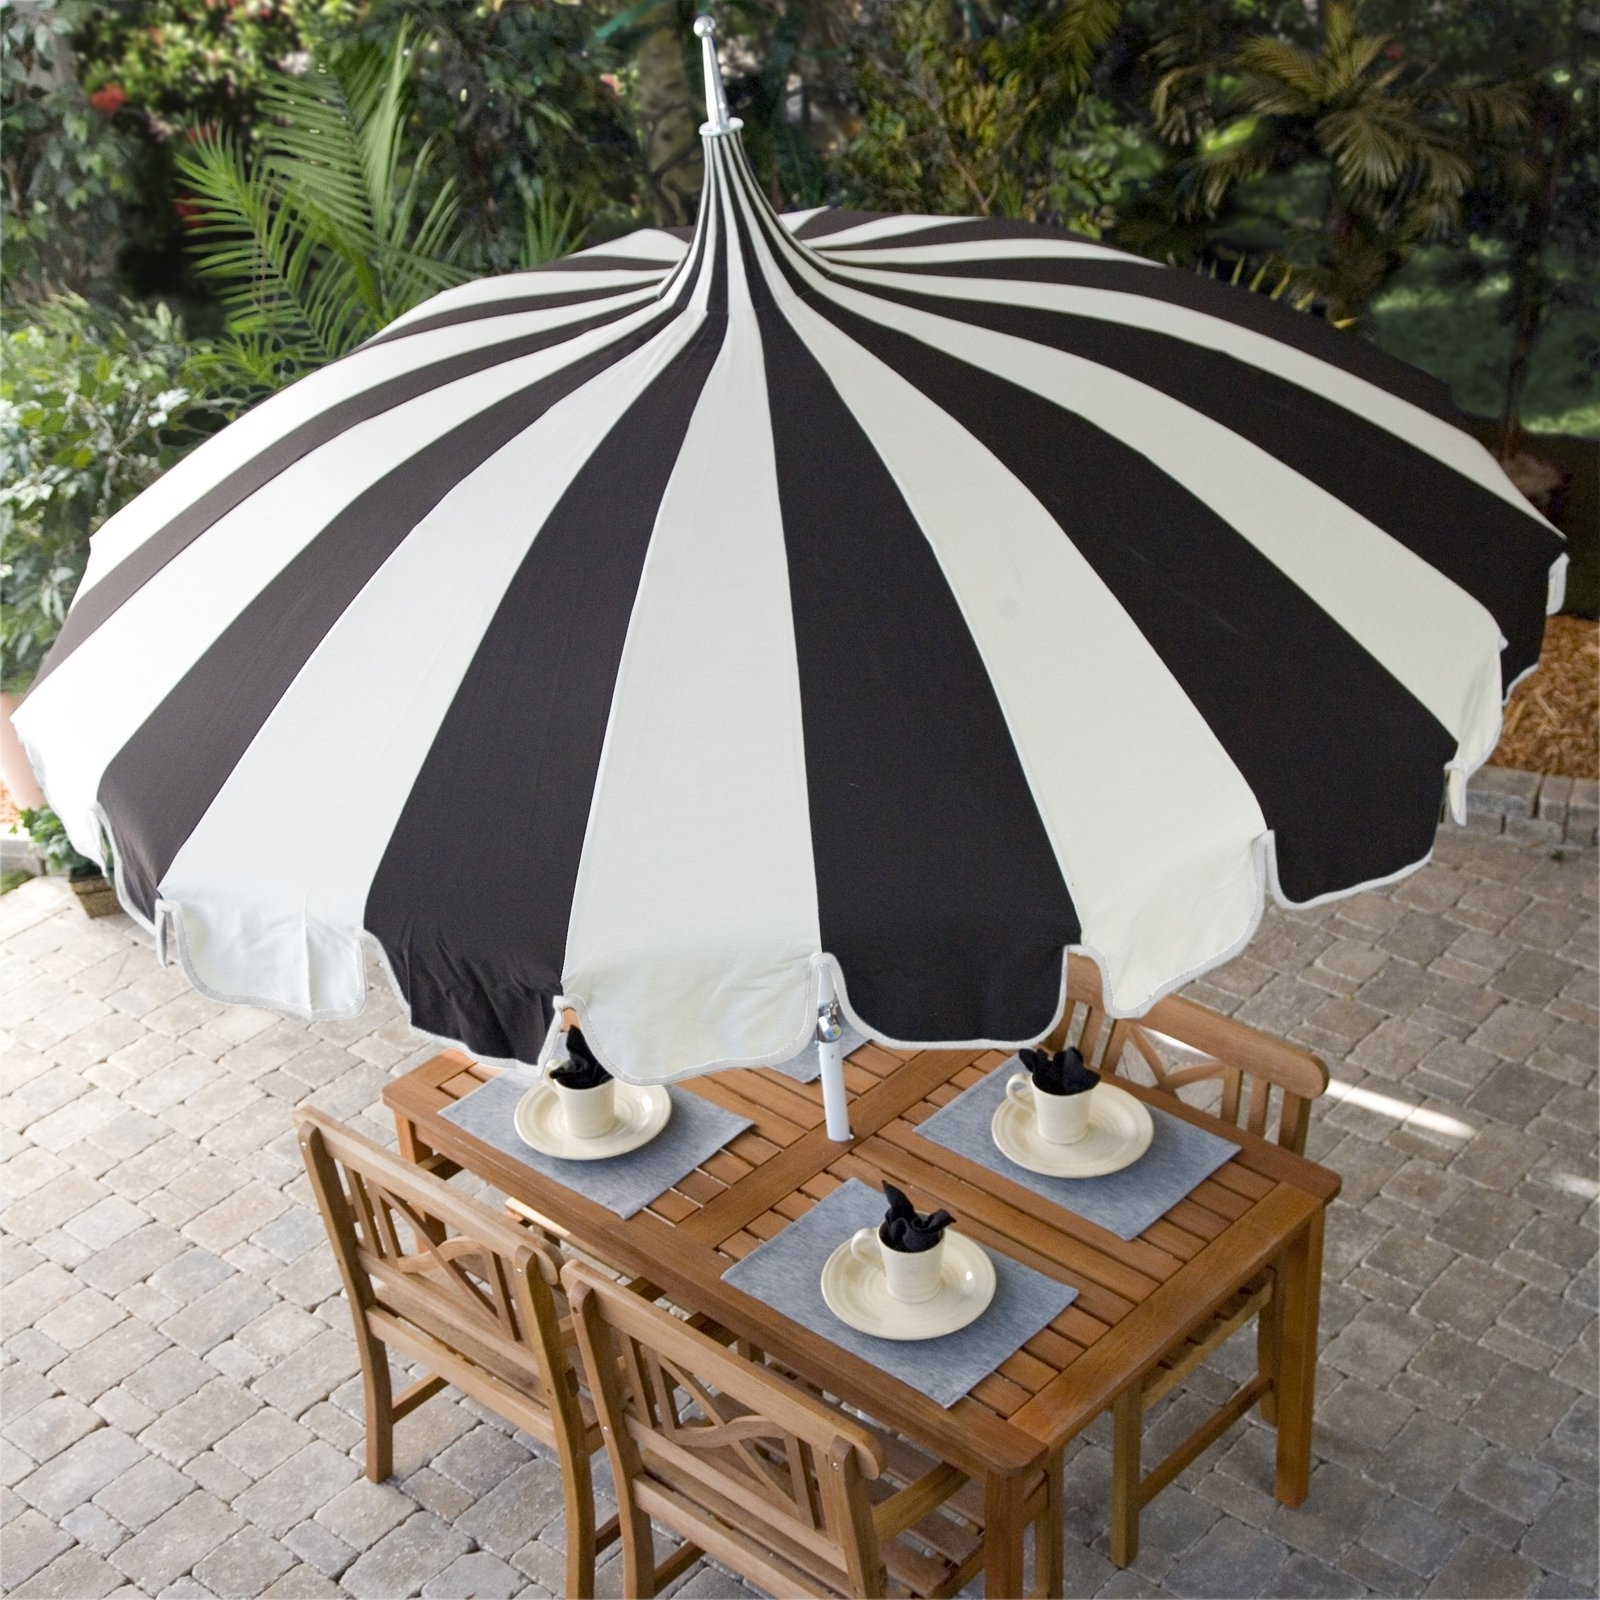 Furniture: California Umbrella Wood Market Patio Umbrella For Pertaining To Well Liked Black And White Patio Umbrellas (Gallery 6 of 20)